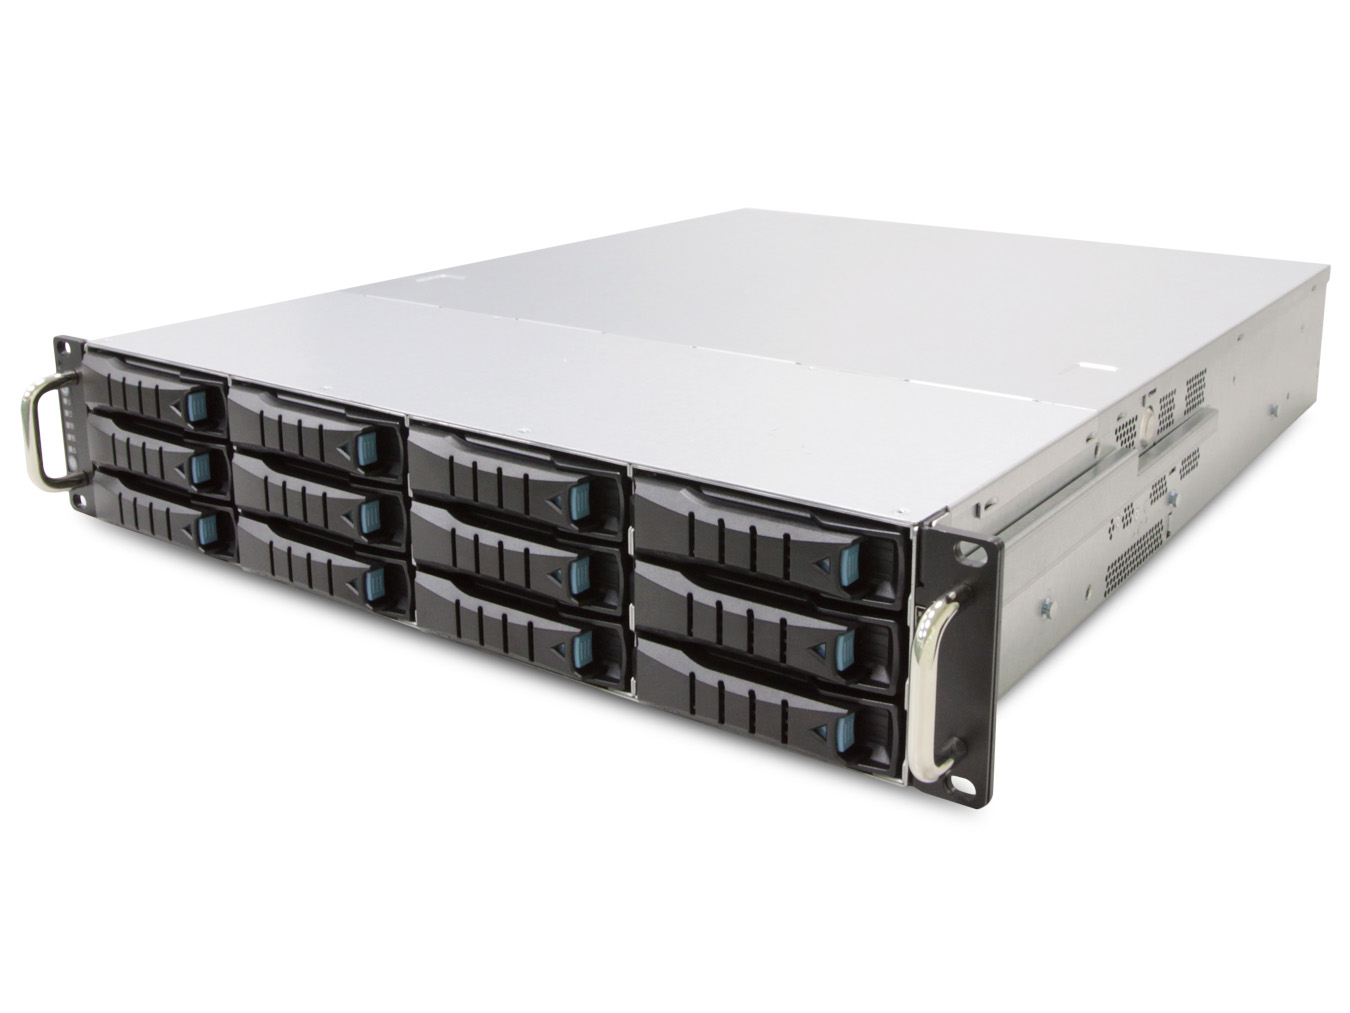 AIC RSC-2ETS XE1-2ETS0-01 2U 12-bay Storage Server Chassis